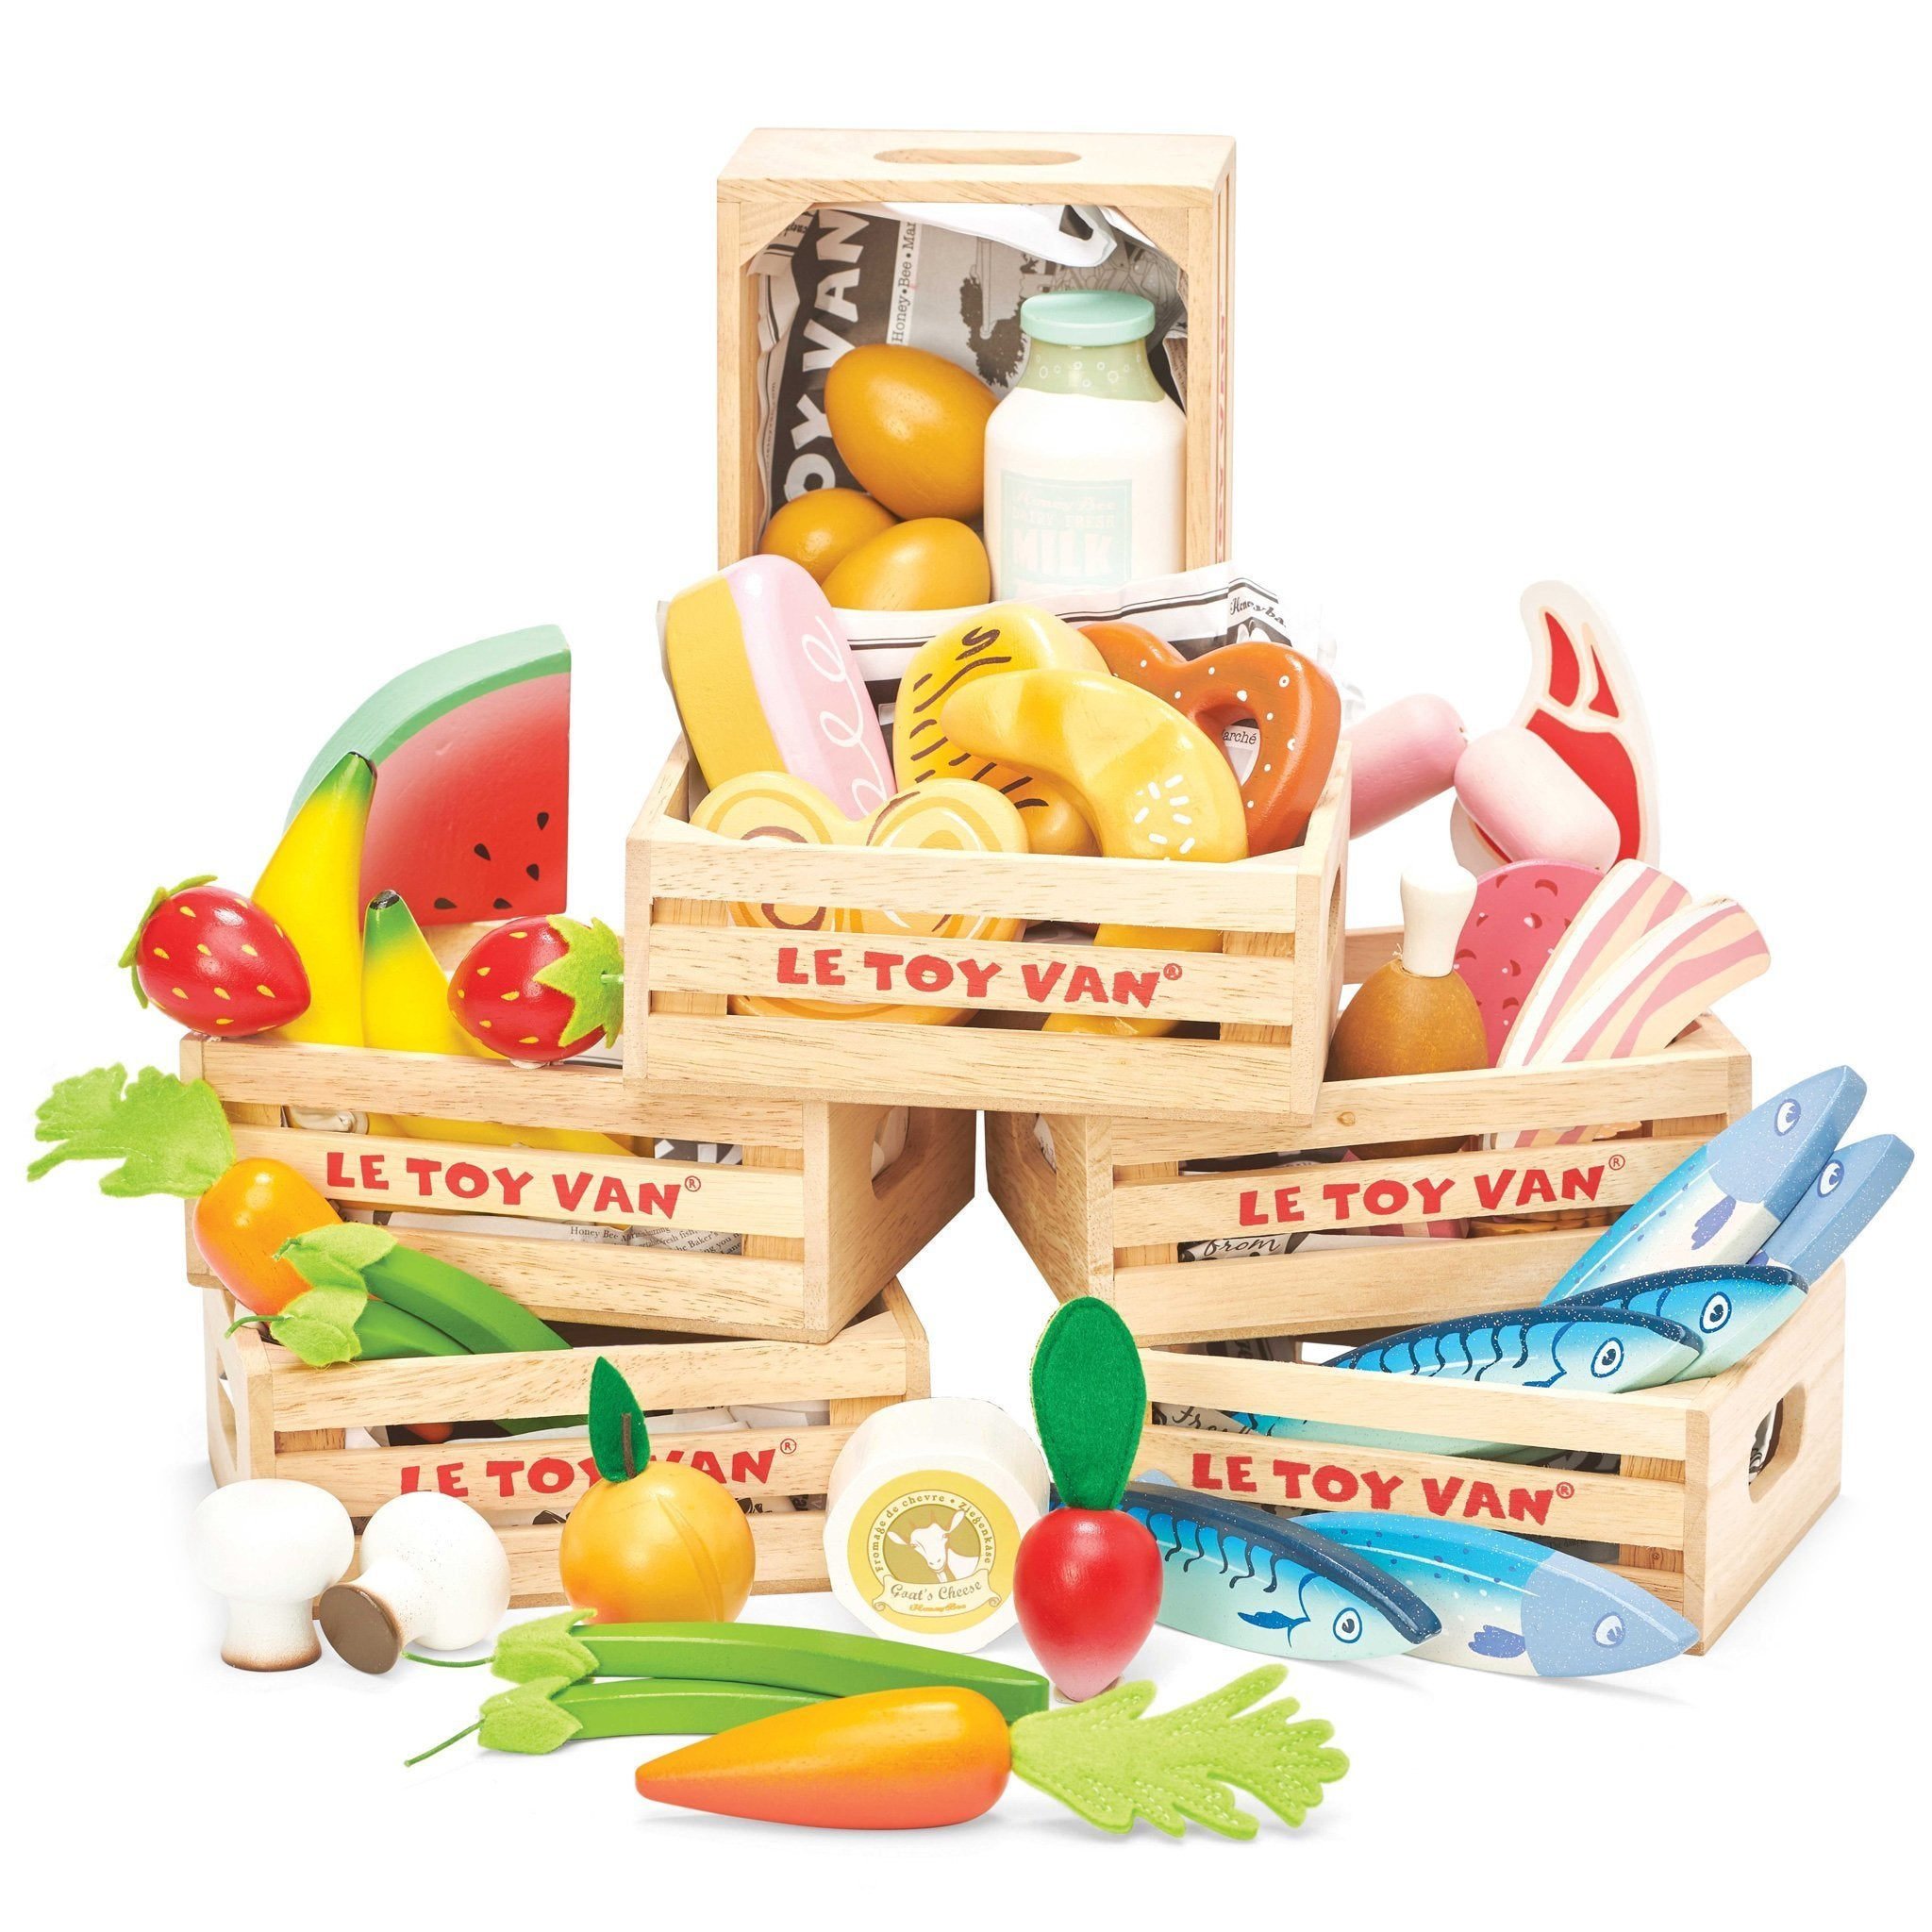 Le Toy Van Food In Wooden Crates Le Toy Van Toy Kitchens & Play Food at Little Earth Nest Eco Shop